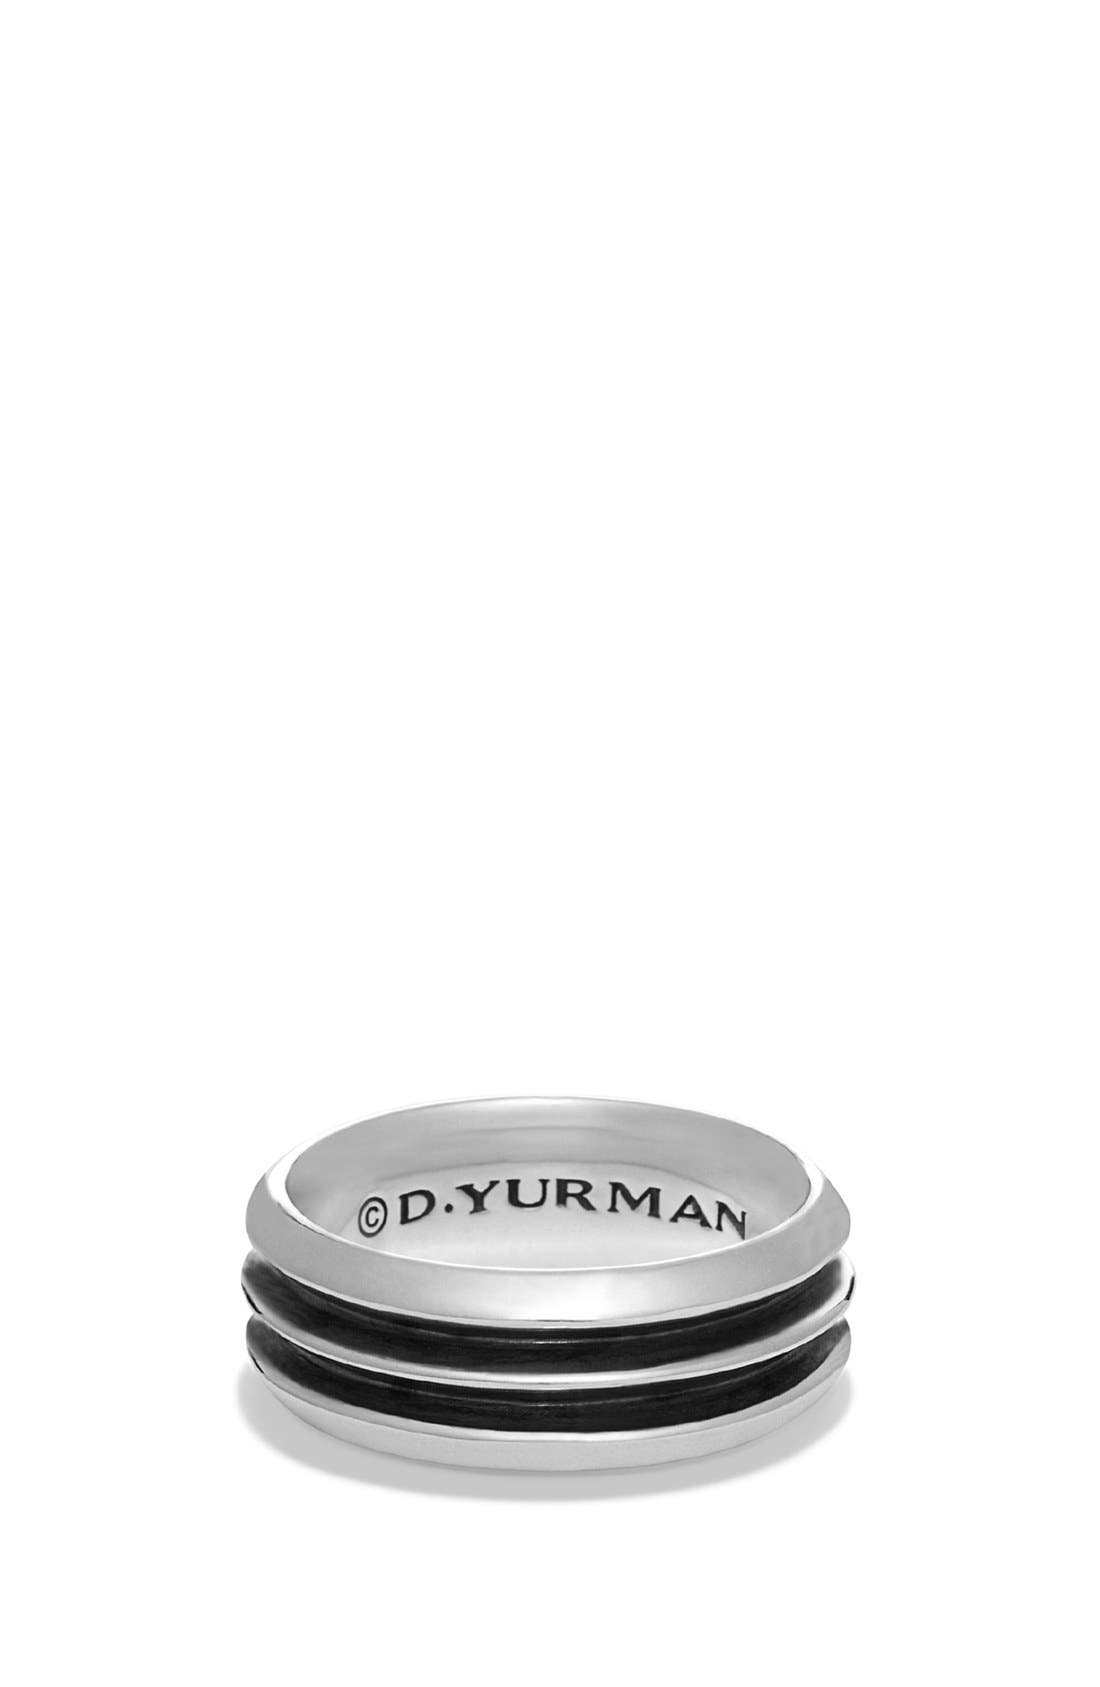 David Yurman 'Royal Cord' Knife-Edge Band Ring